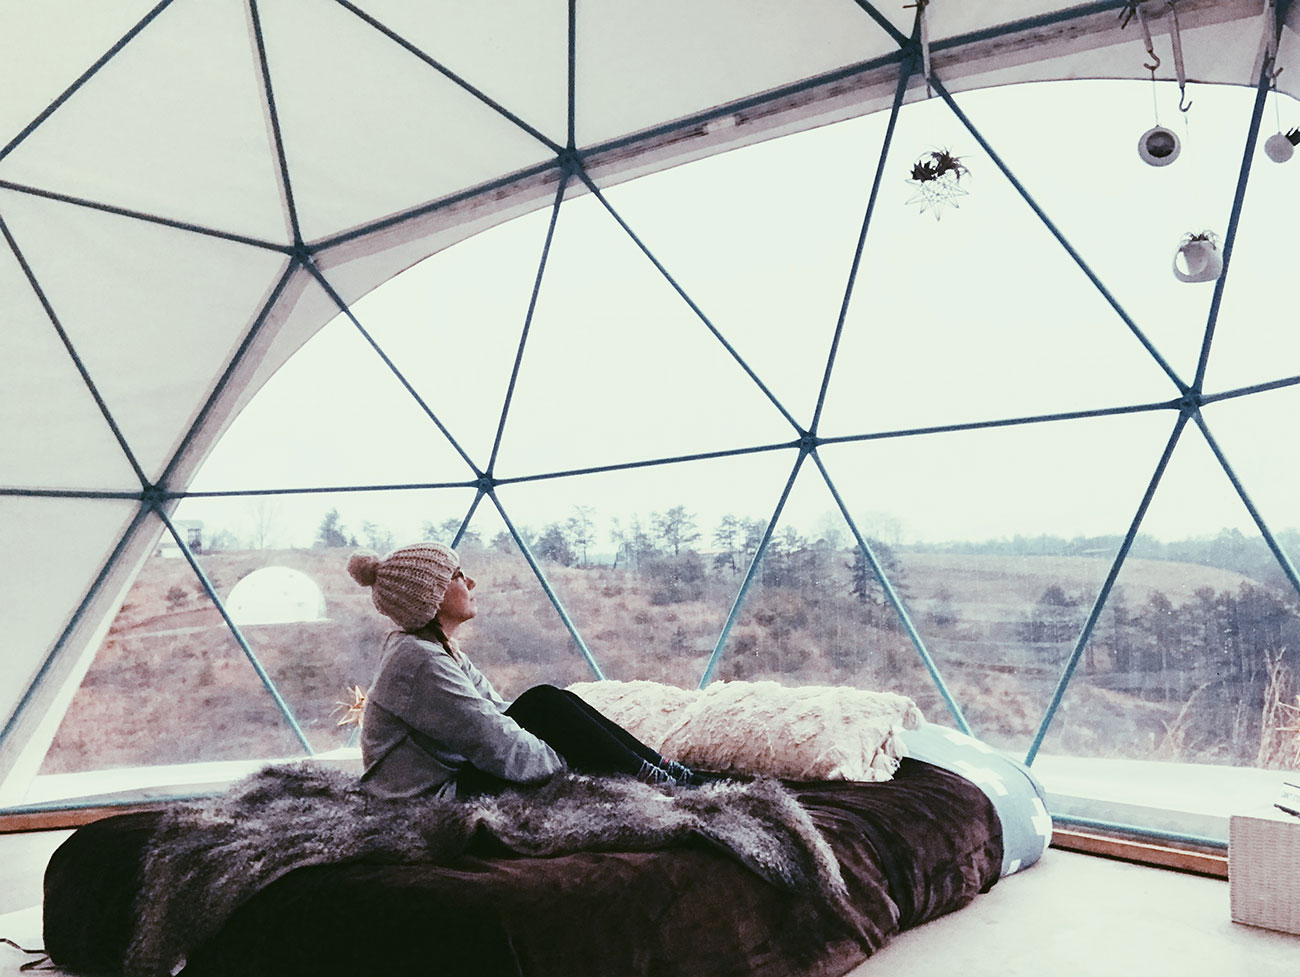 Sleep under the stars in a geodesic dome 2.5 hours from Charlotte